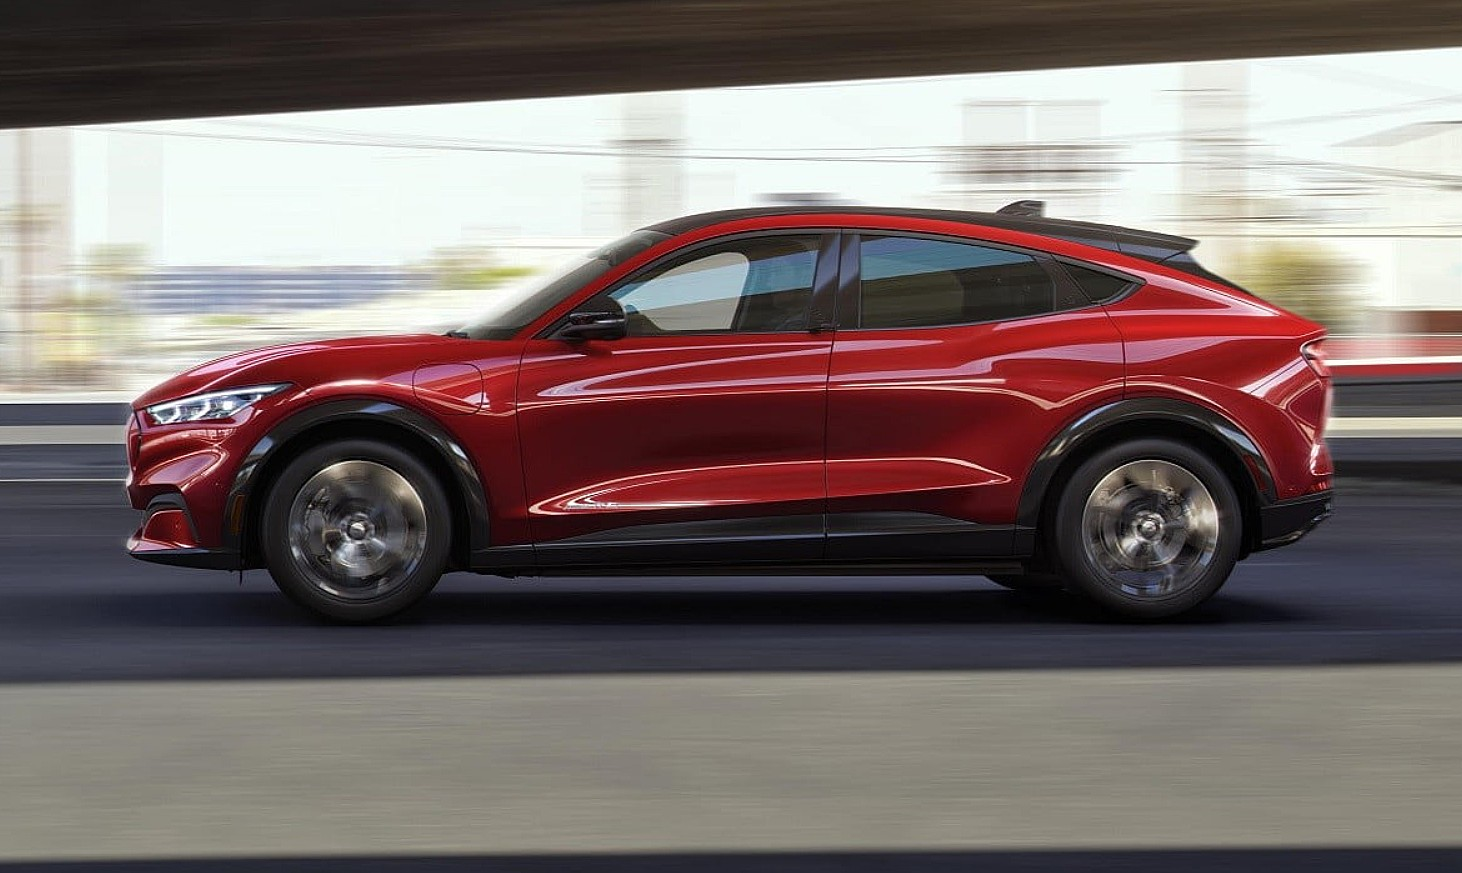 Tesla Model Y rival Ford Mustang Mach-E gets its first early review - Teslarati